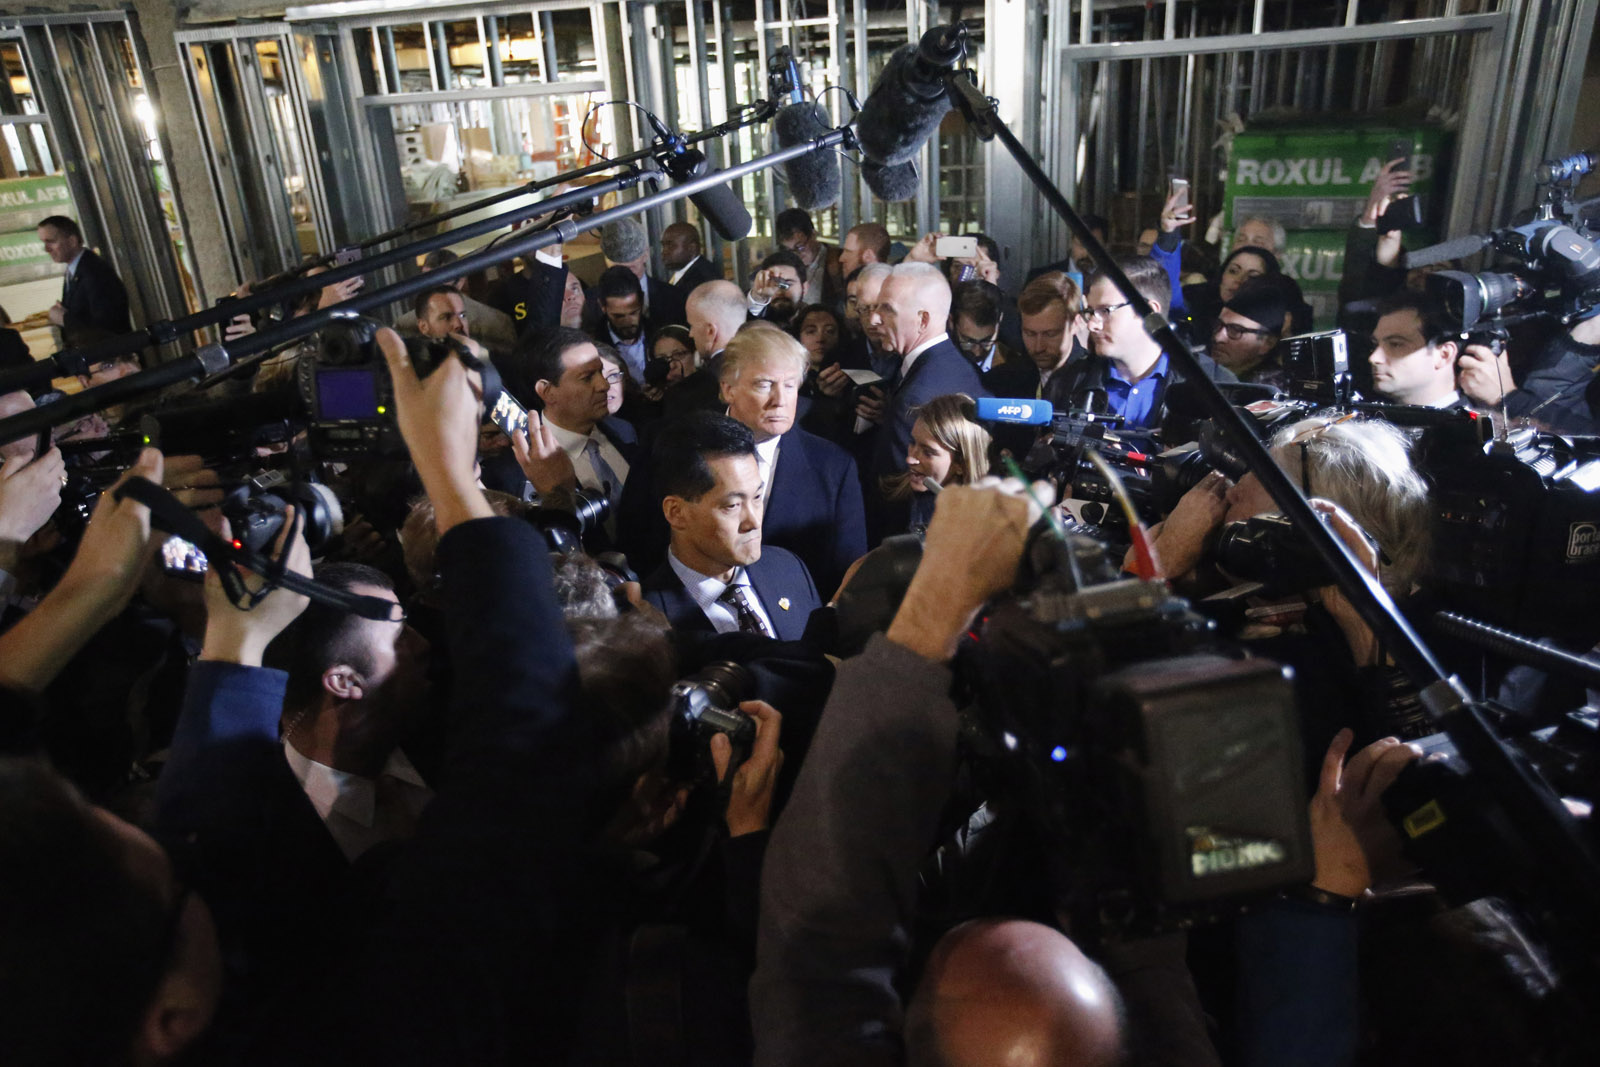 Republican presidential candidate Donald Trump listens to a reporter's question during a tour of the Old Post Office Pavilion, soon to be a Trump International Hotel, Monday, March 21, 2016 in Washington. (AP Photo/Alex Brandon)